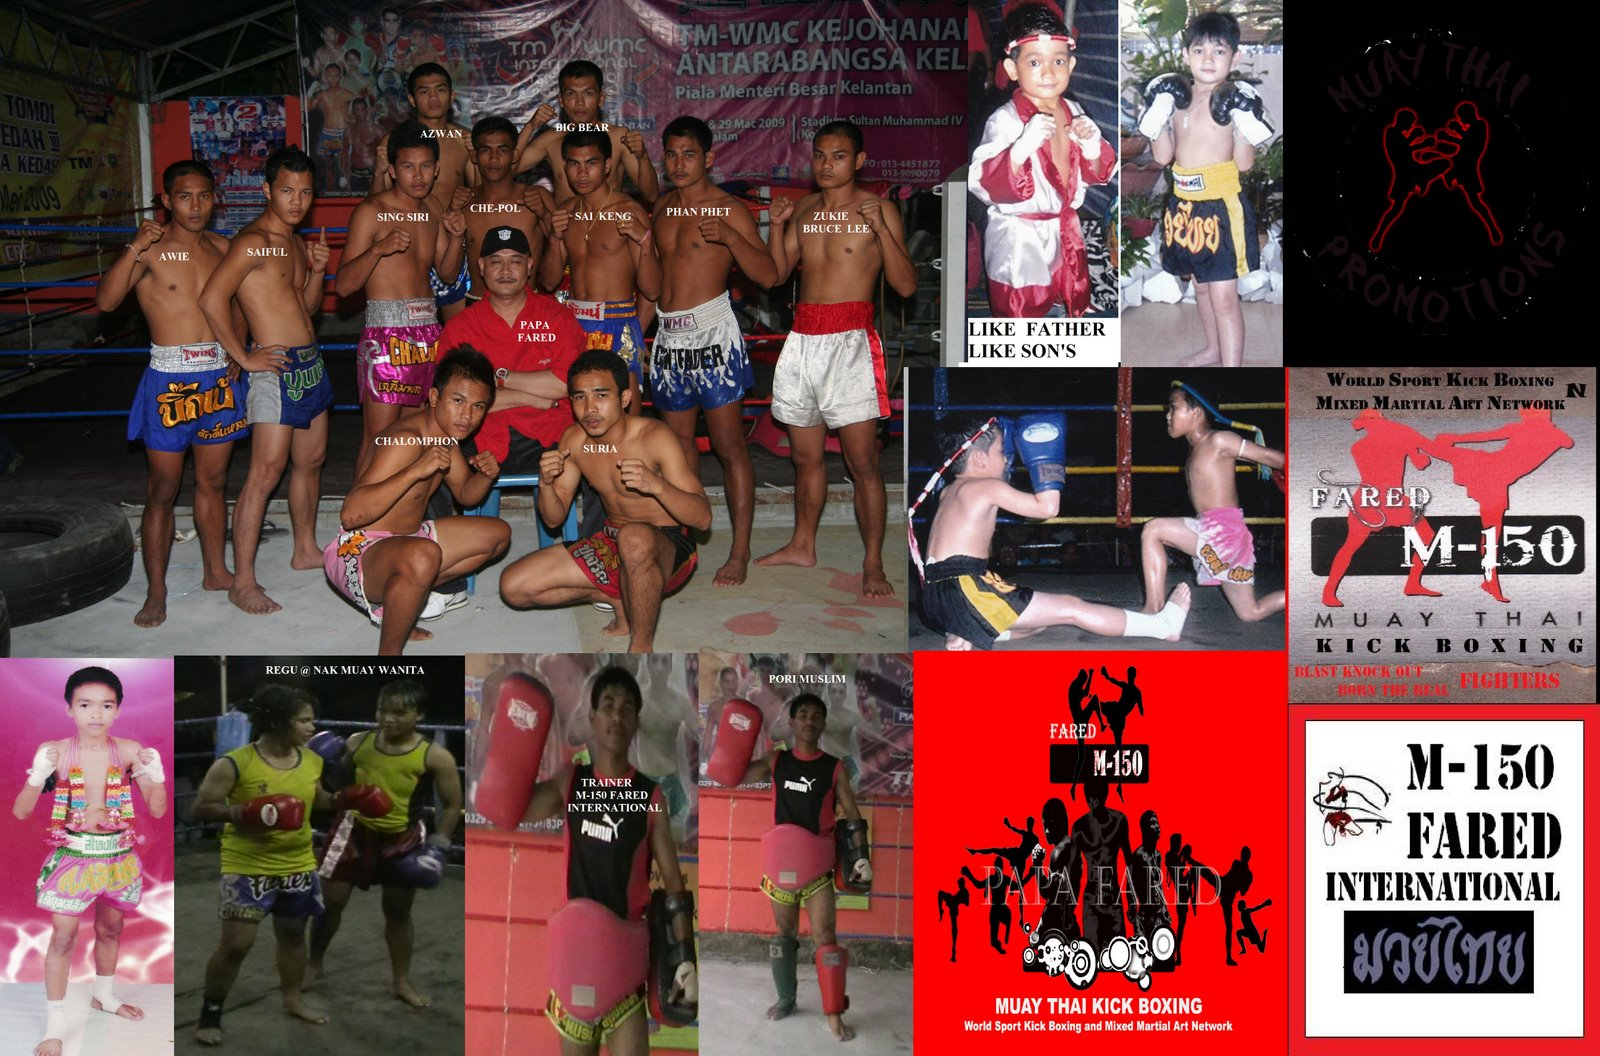 M-150 FARED MUAY THAI & SPORT